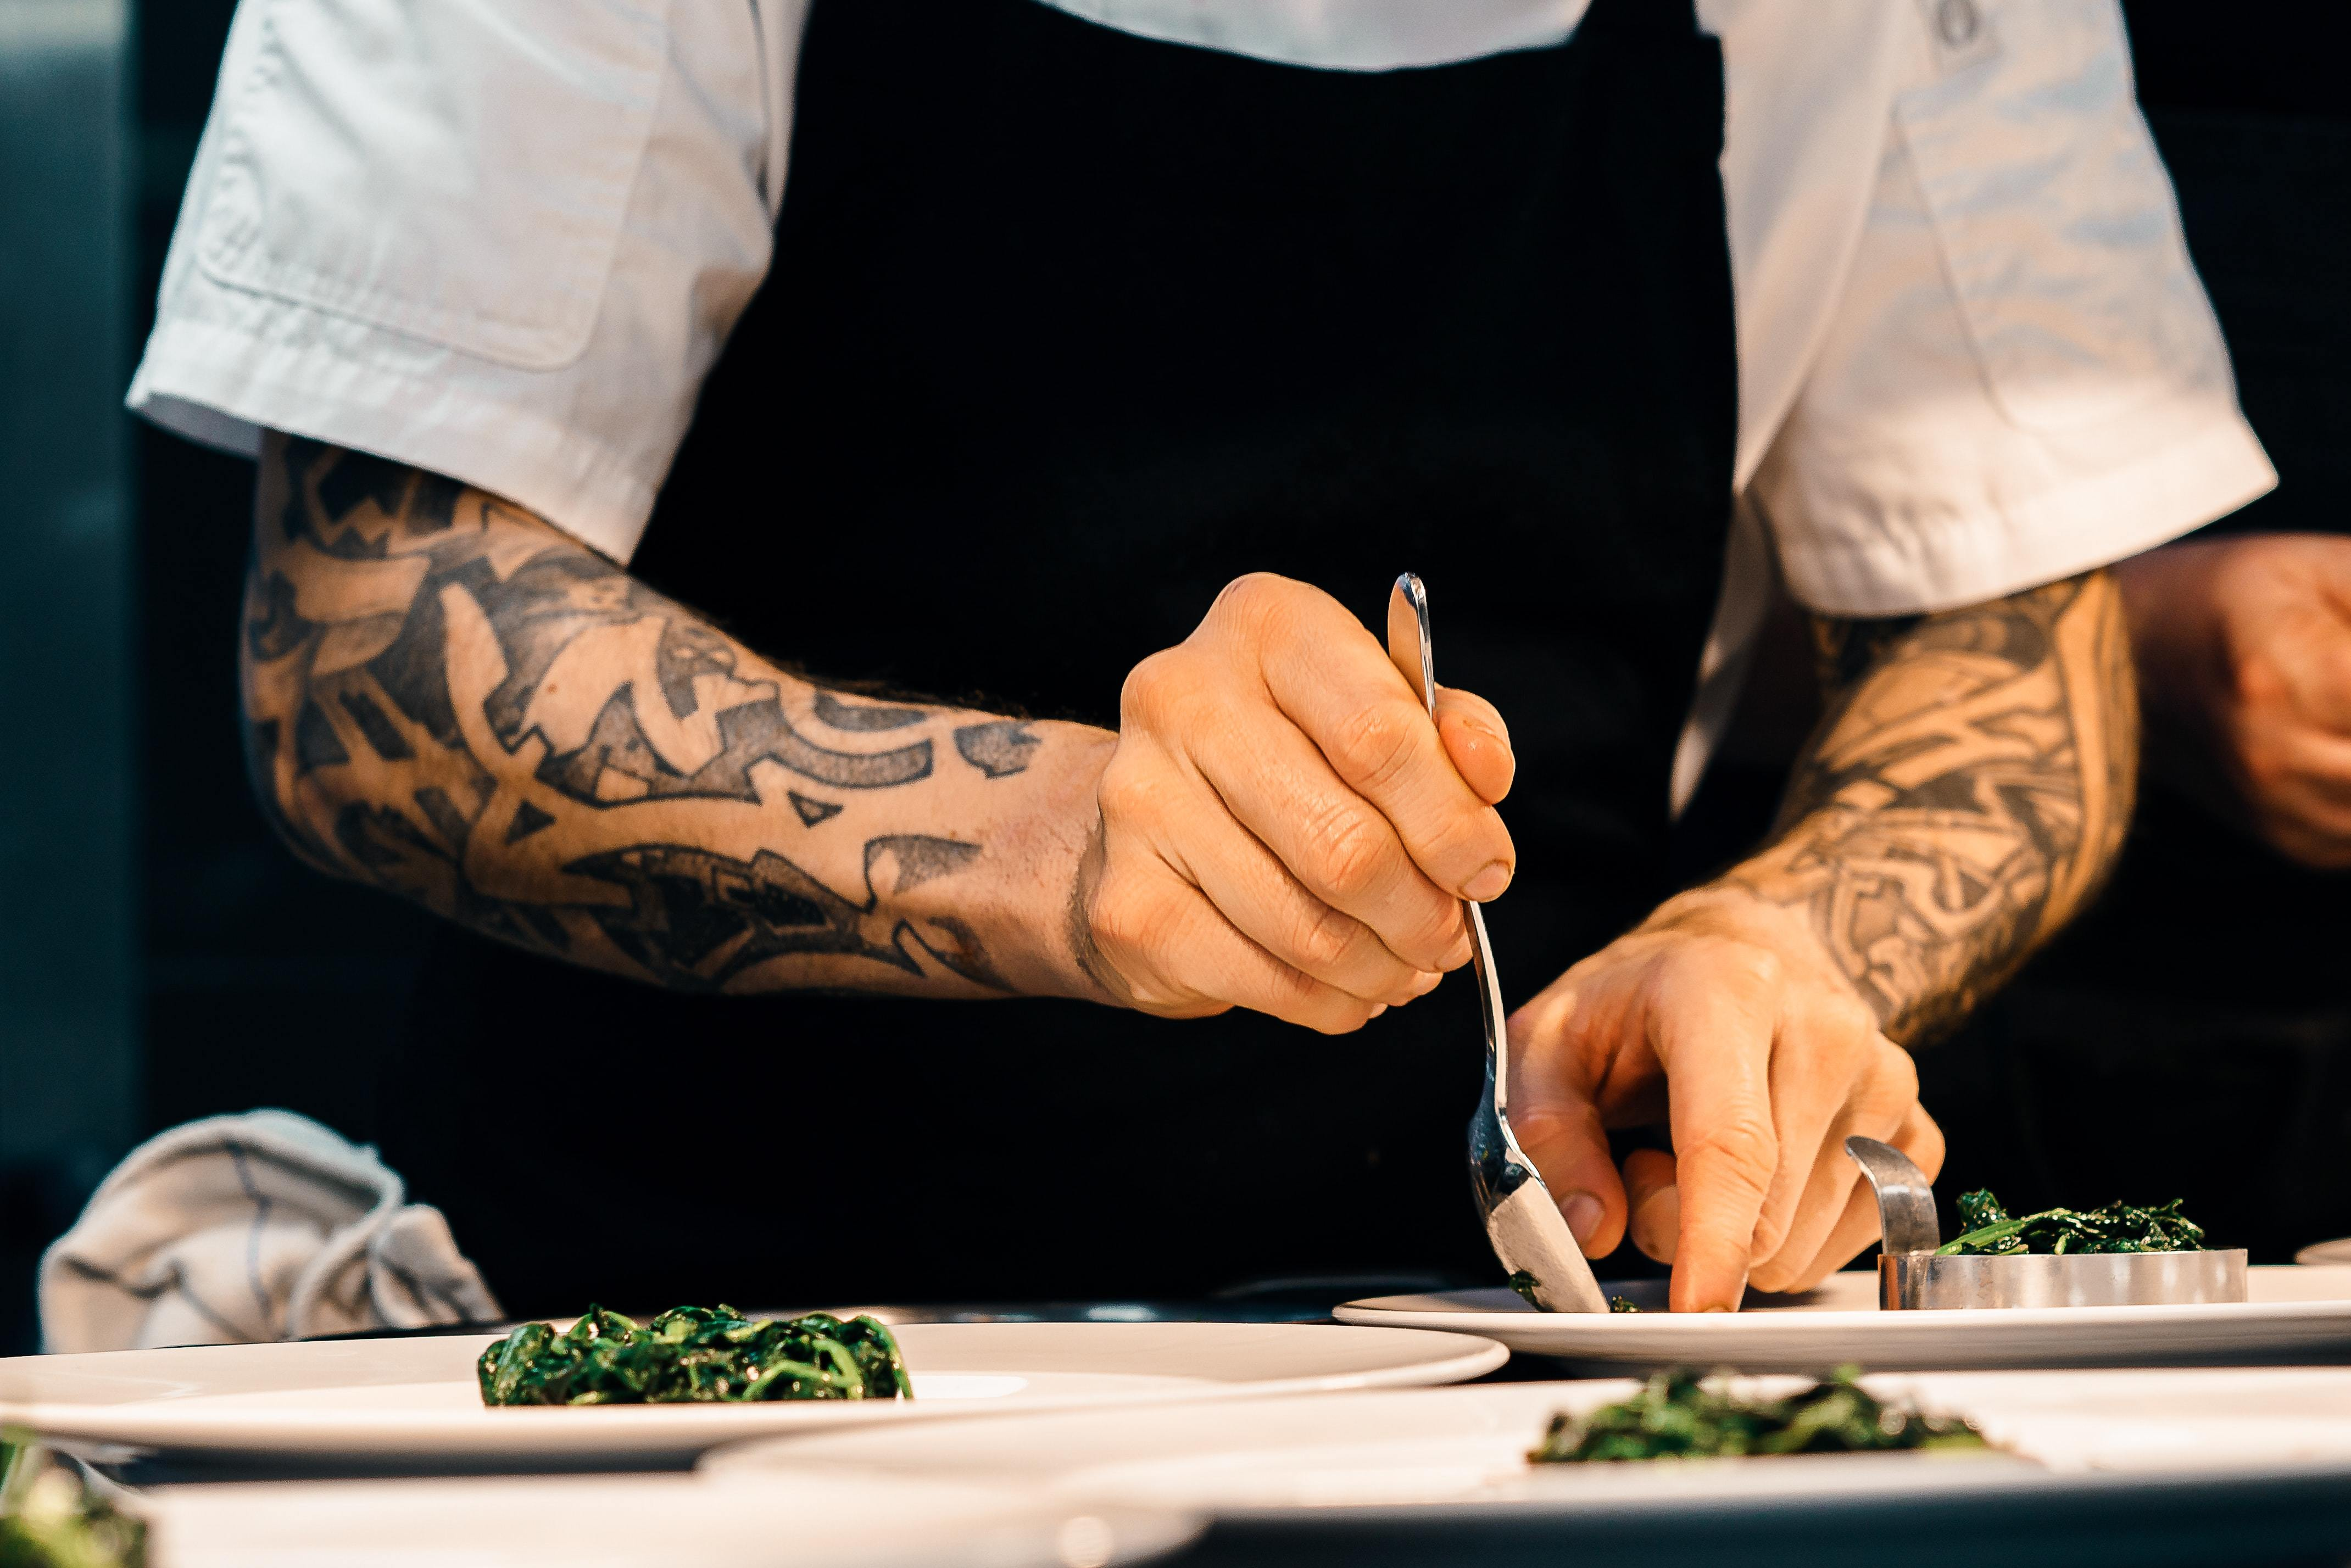 Chef plating up food